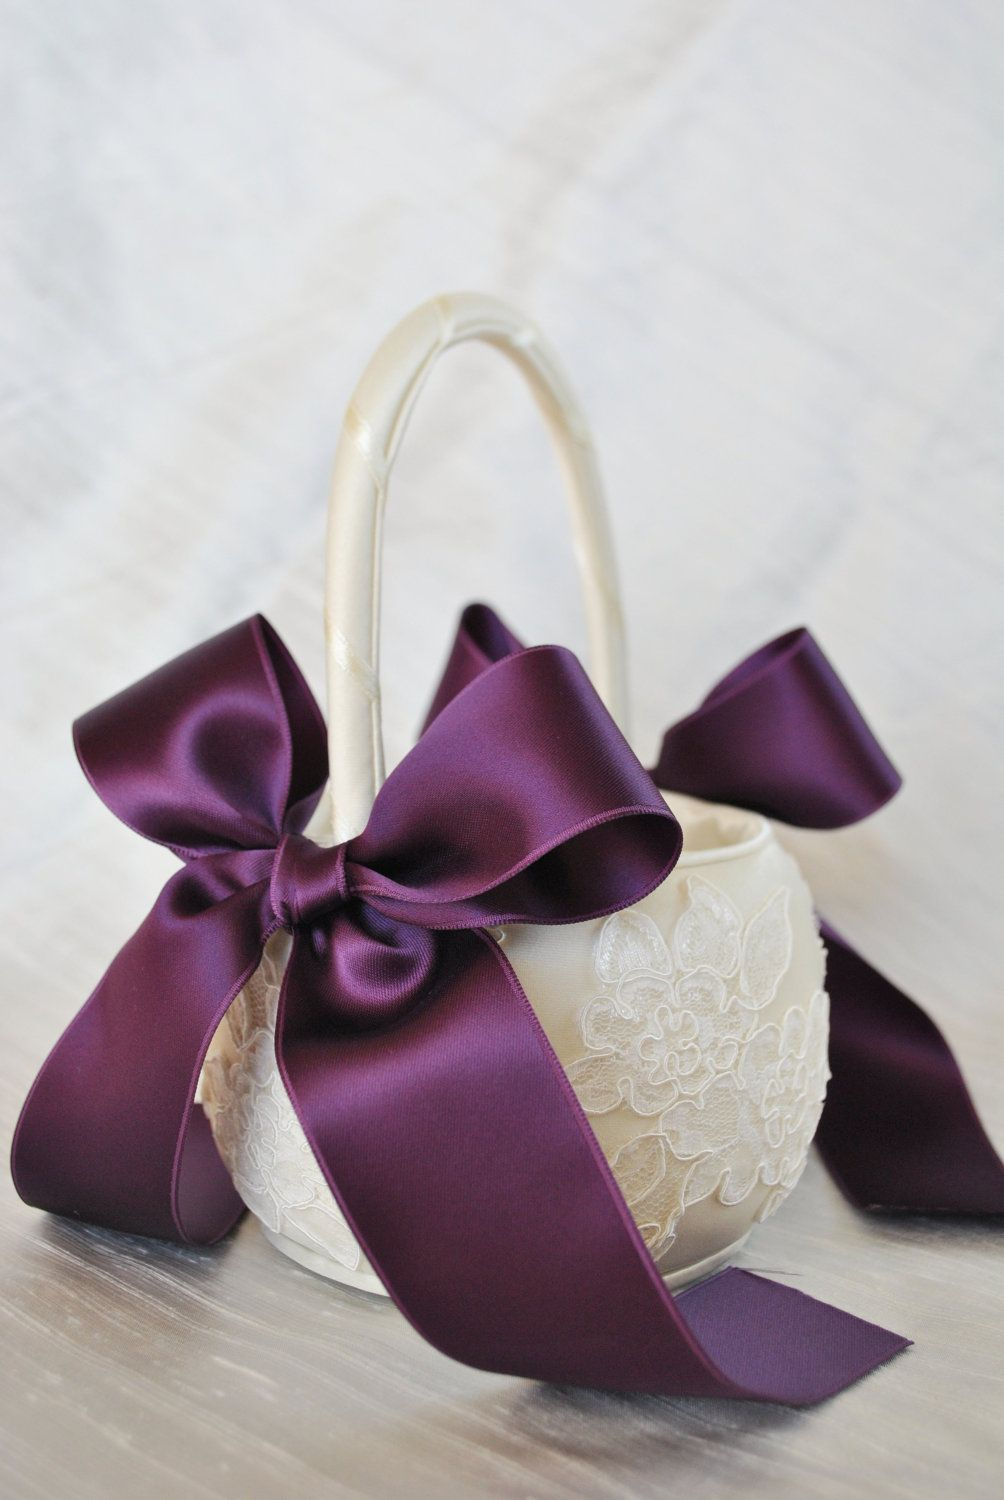 Wedding Flower Girl Baskets 17 best images about flower girl on pinterest purple suits rhinestones and indian weddings